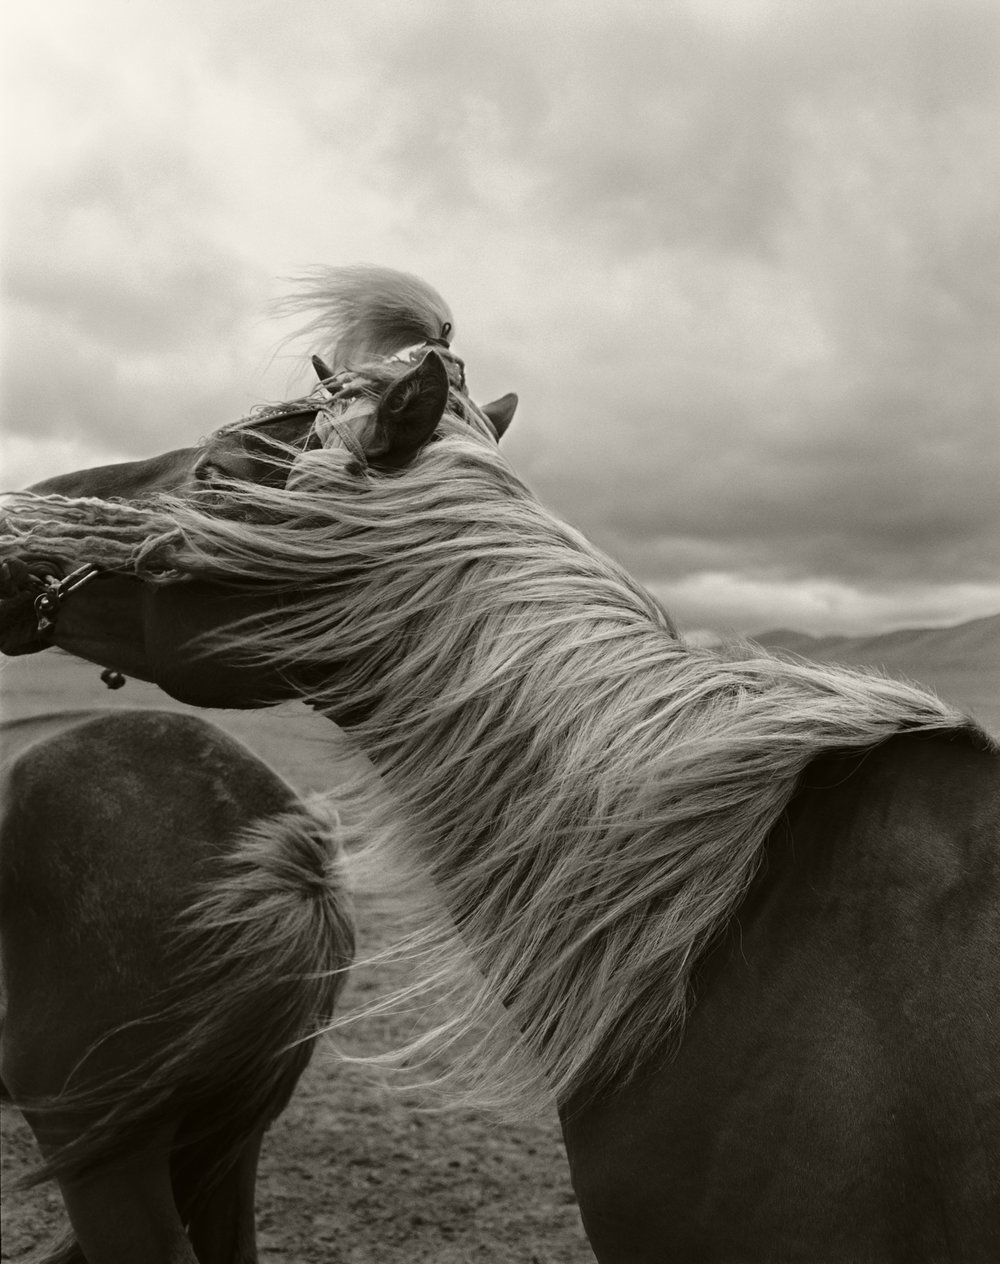 HORSE IN MONGOLIA